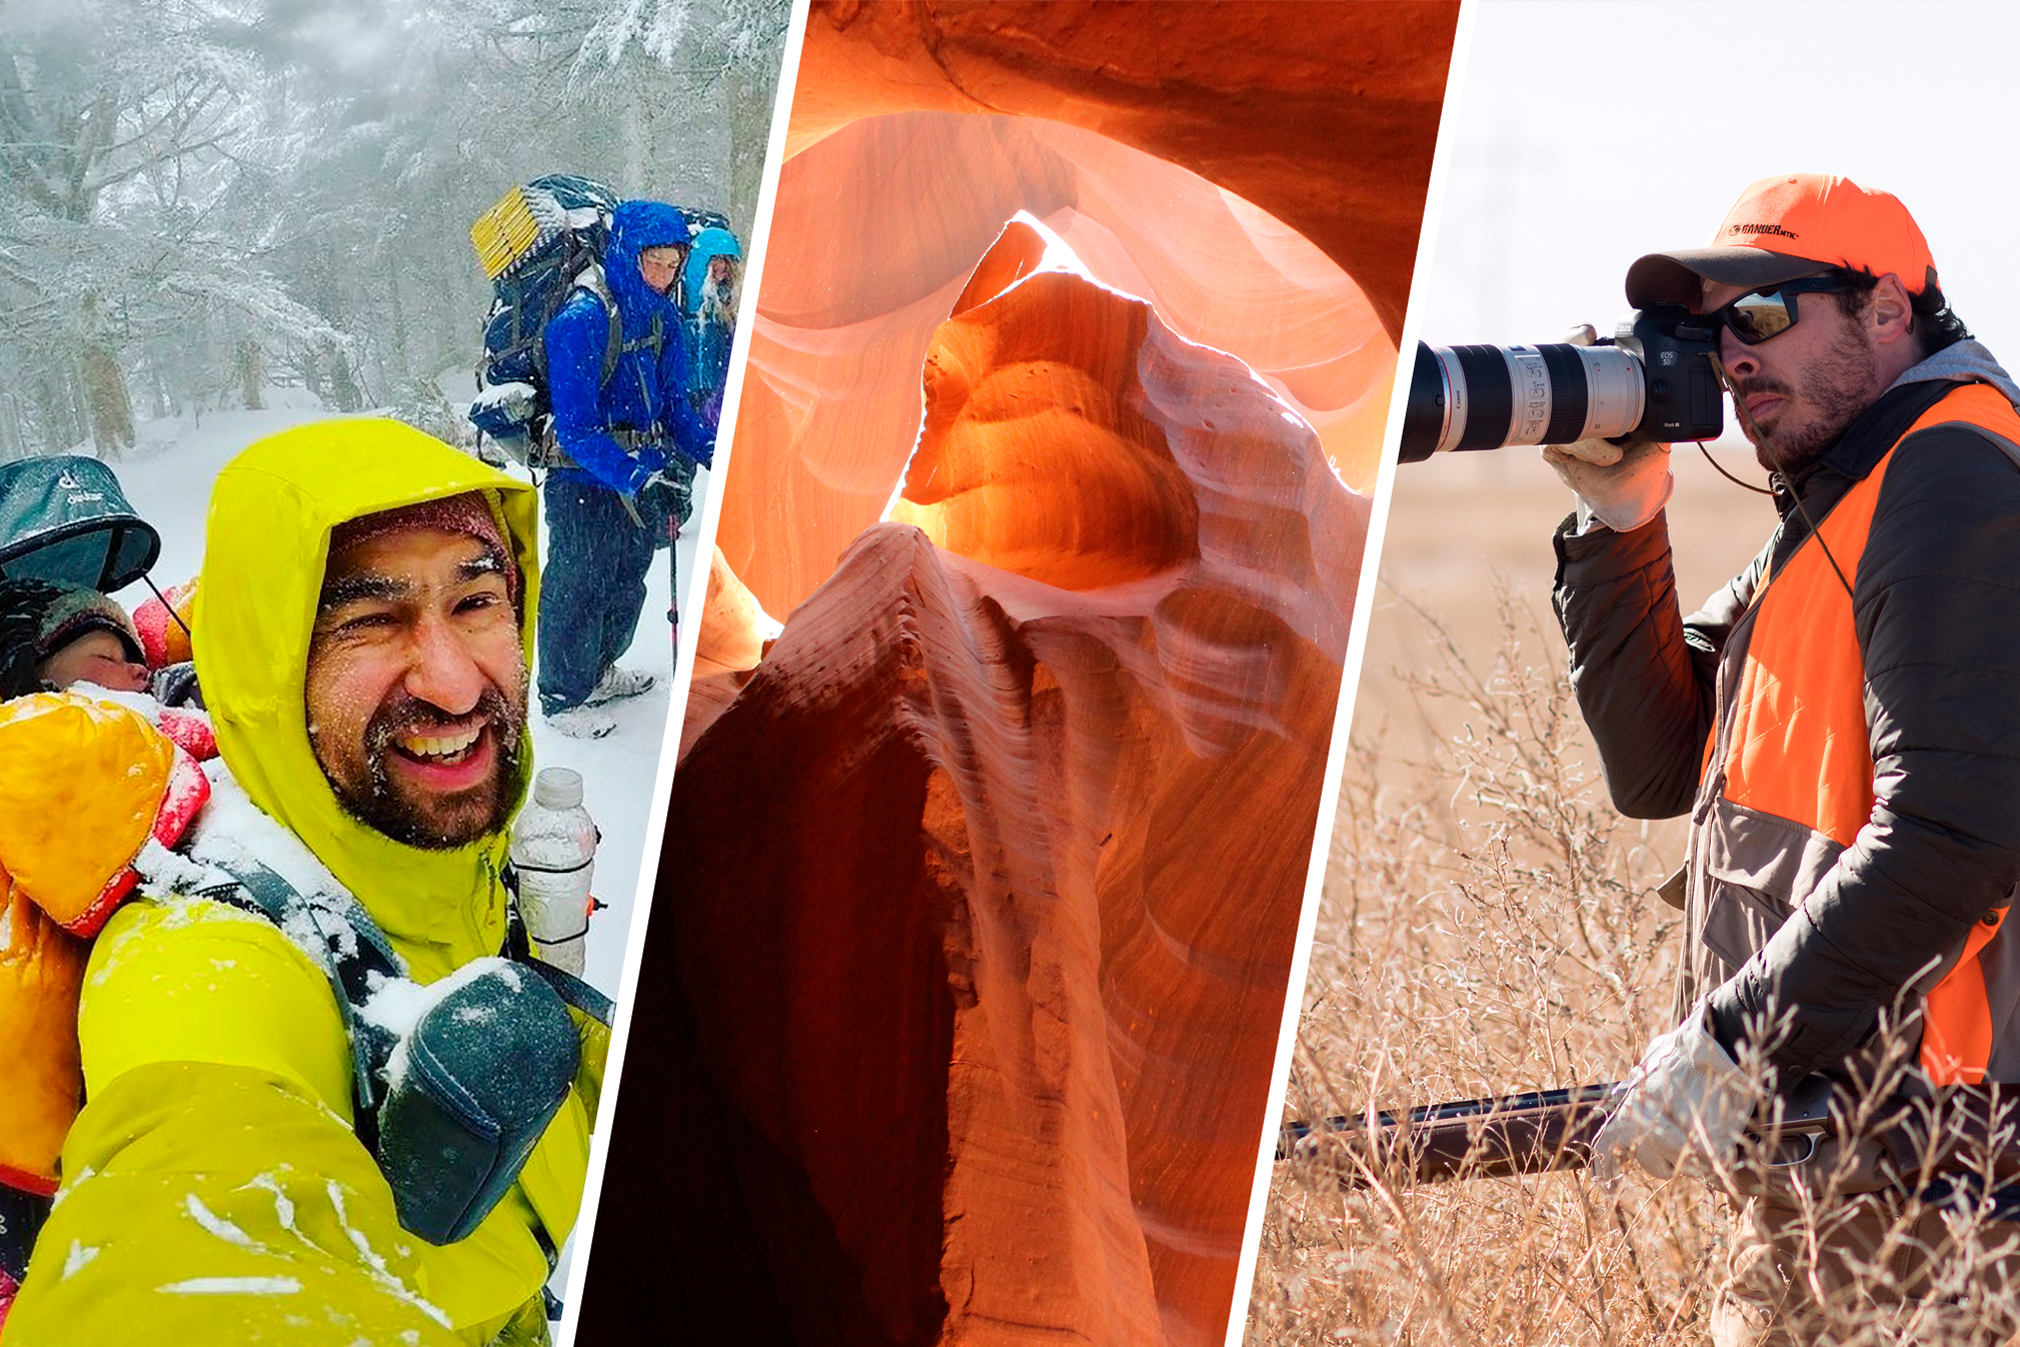 Trending: Our Top Outdoor Stories This Week